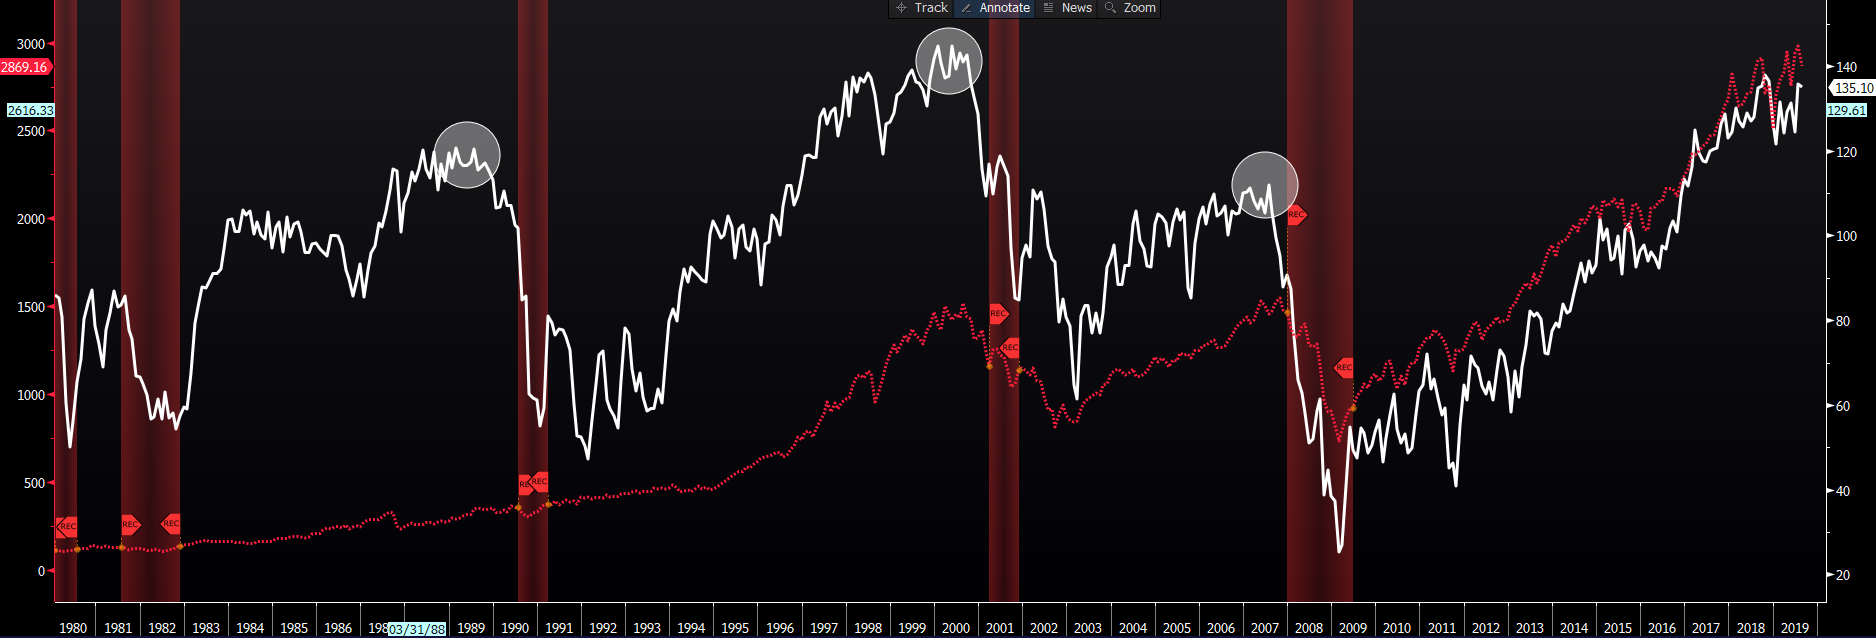 White line – US consumer confidence. Red line – S&P 500. Red-shaded area – periods when the US has been in recession.